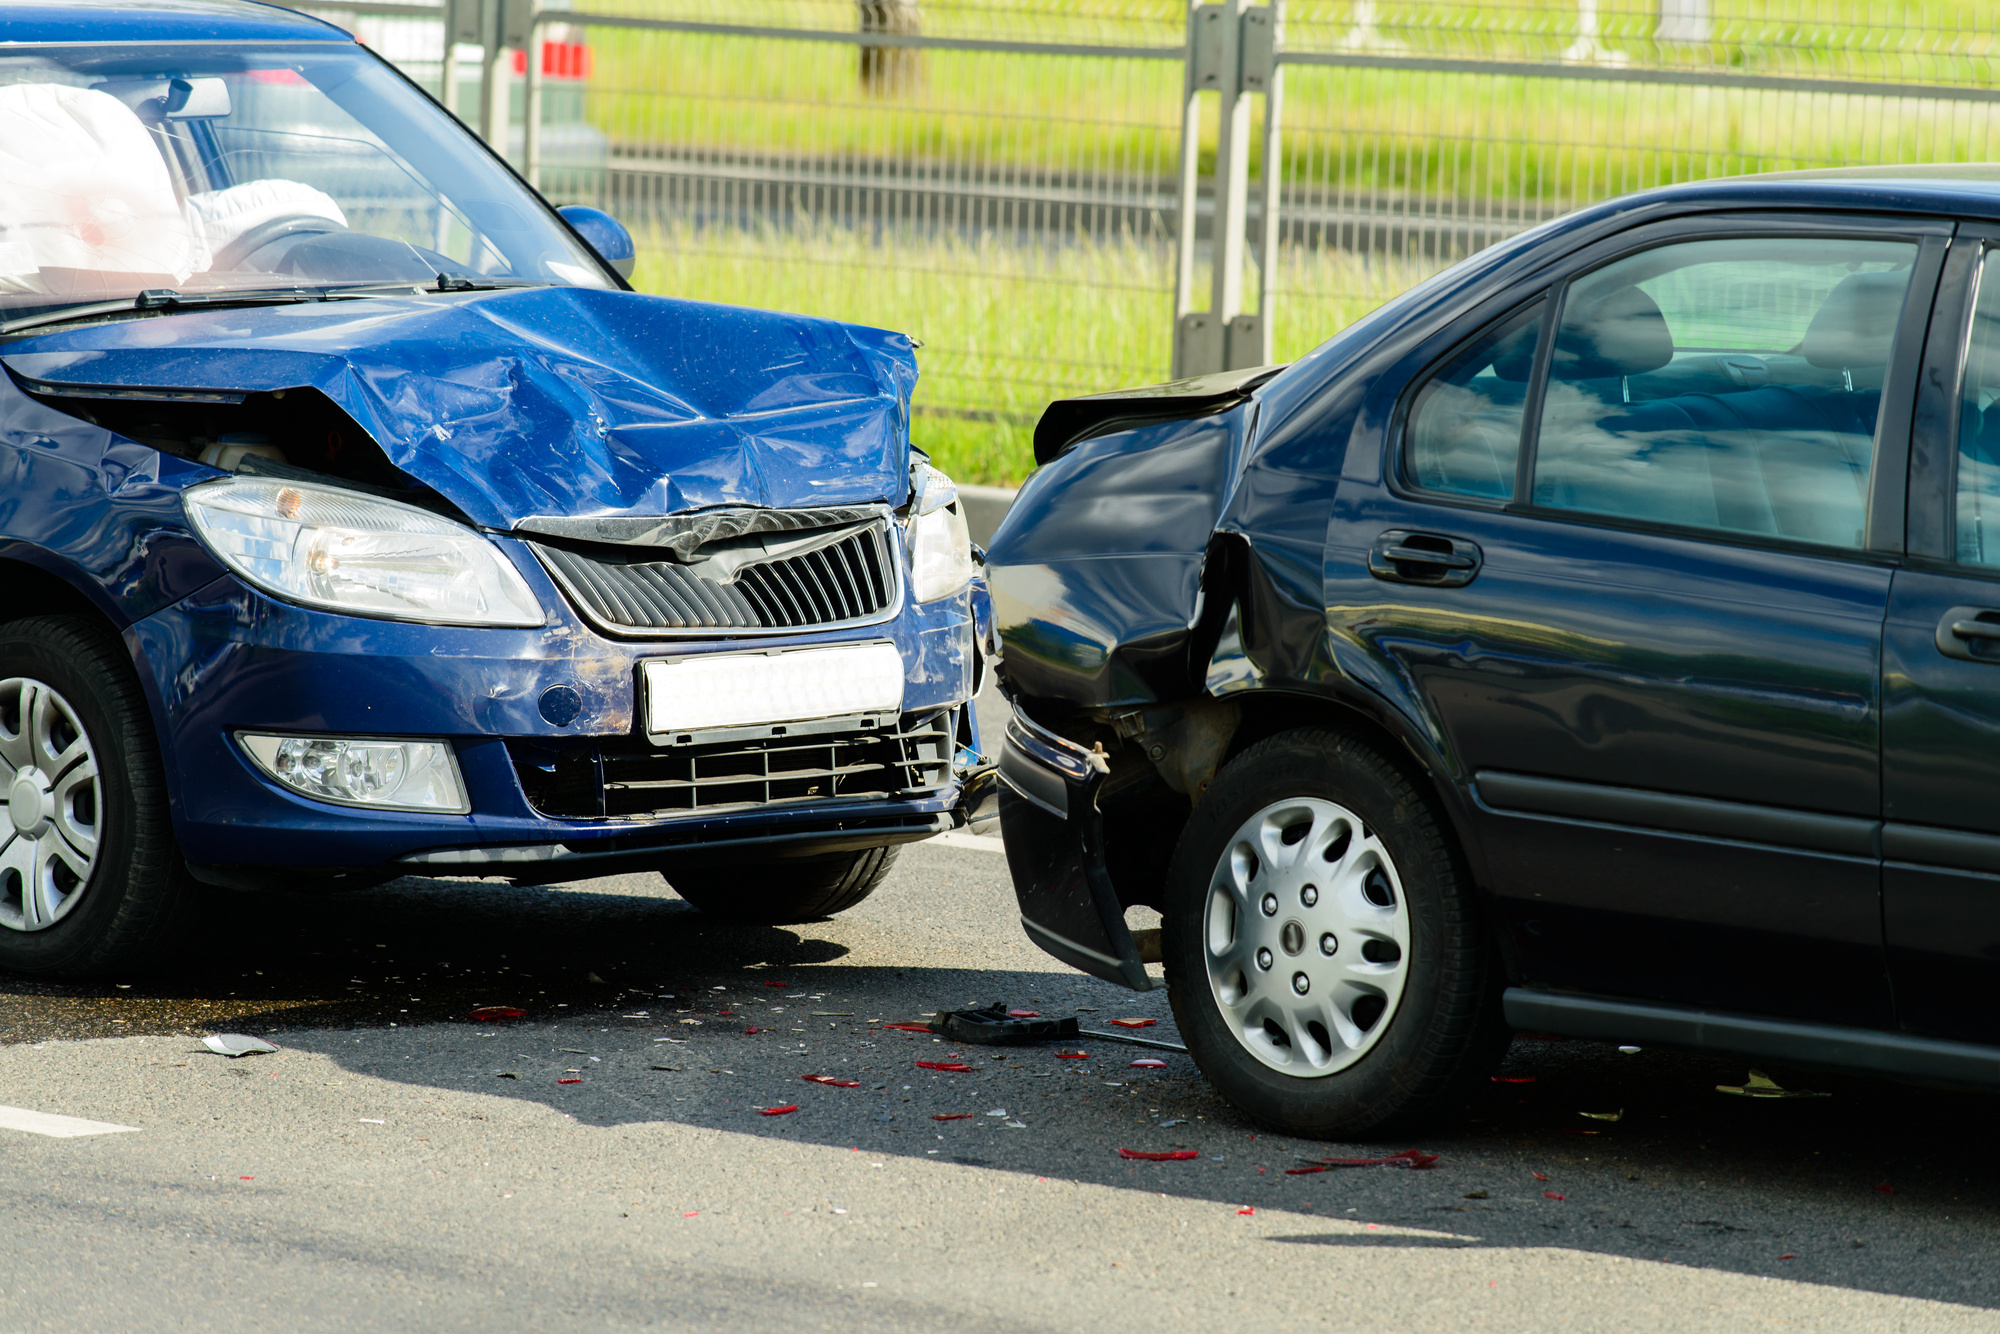 7 Vehicle Crash Records to Have When Meeting Your Lawyer